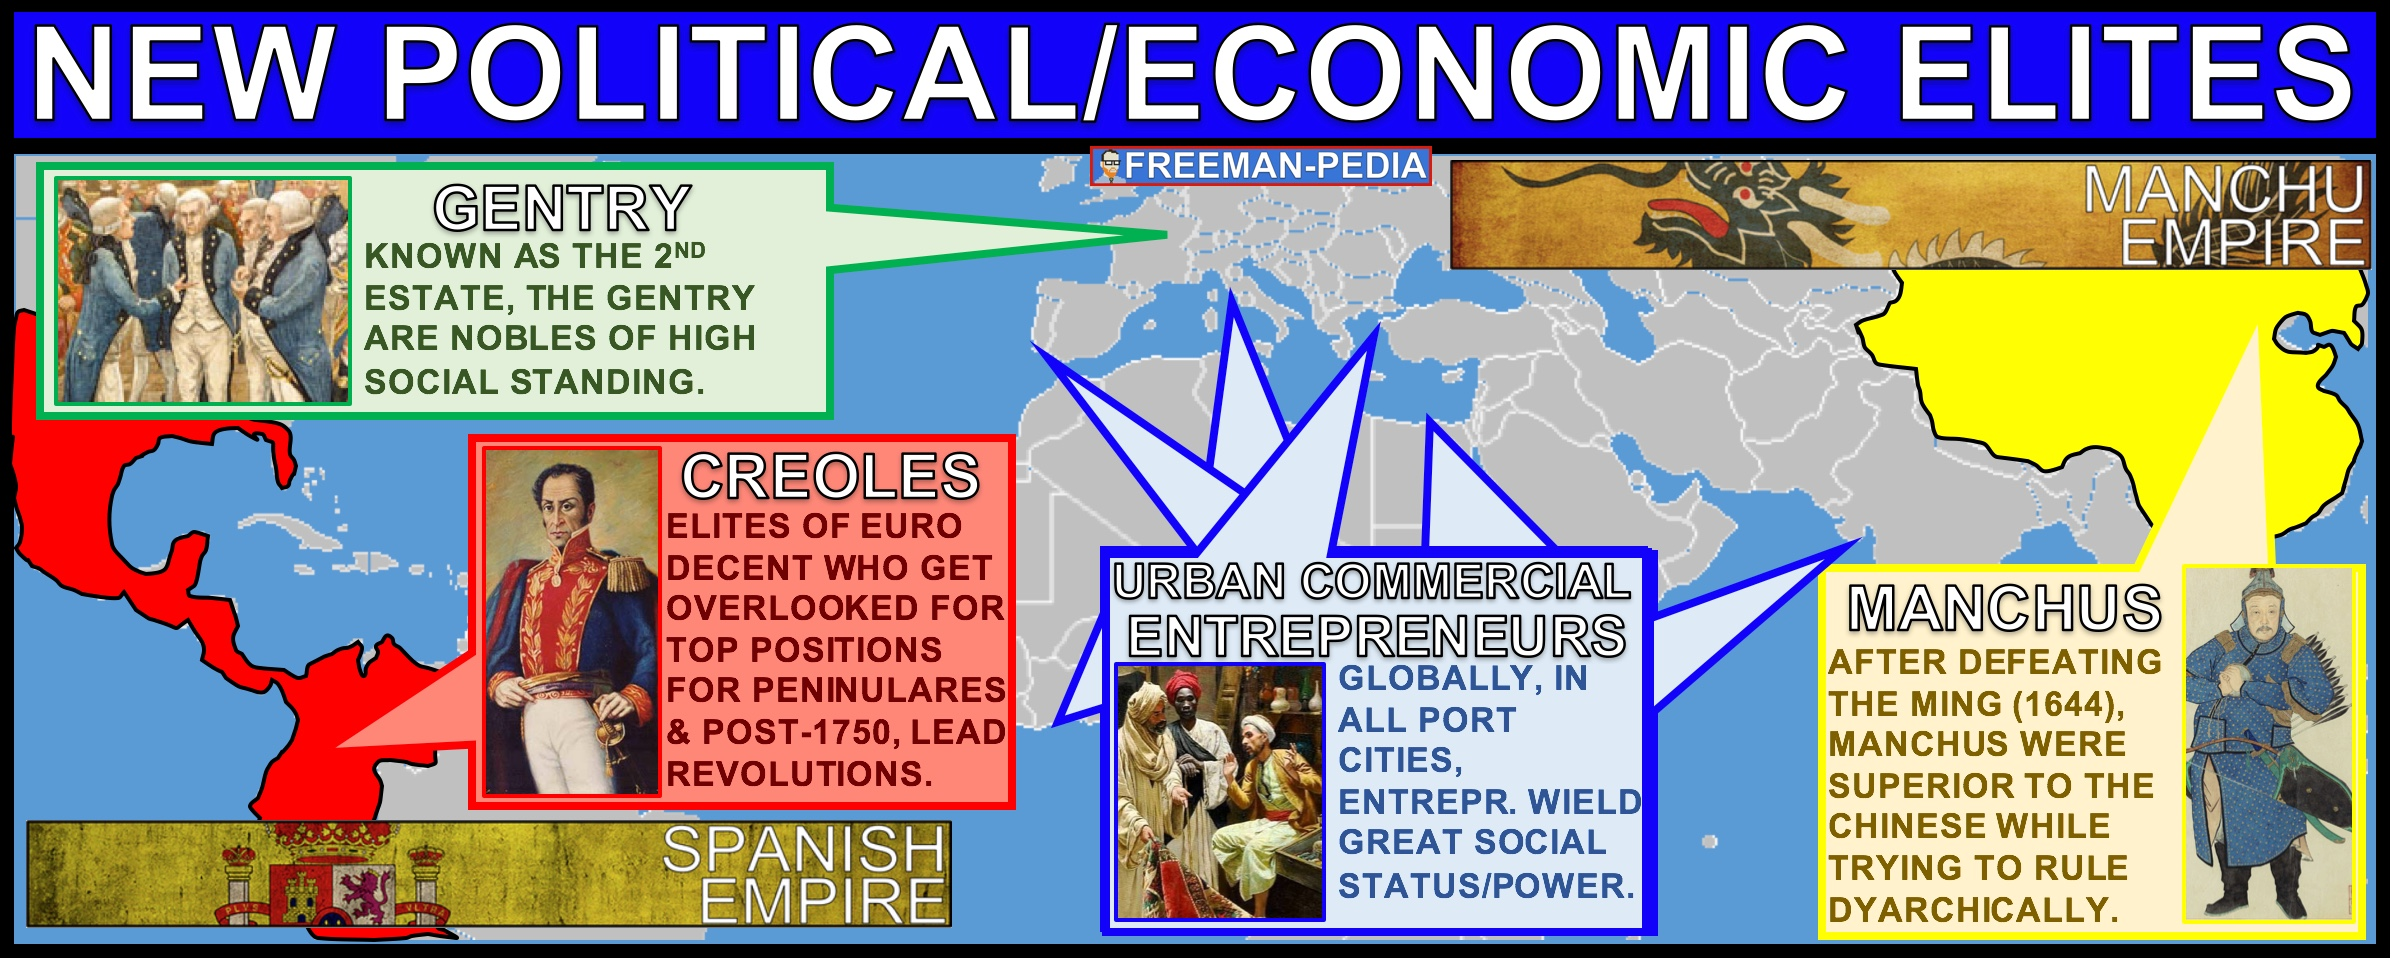 A. Both imperial conquests and widening global economic opportunities contributed to the formation of  new political and economic elites.